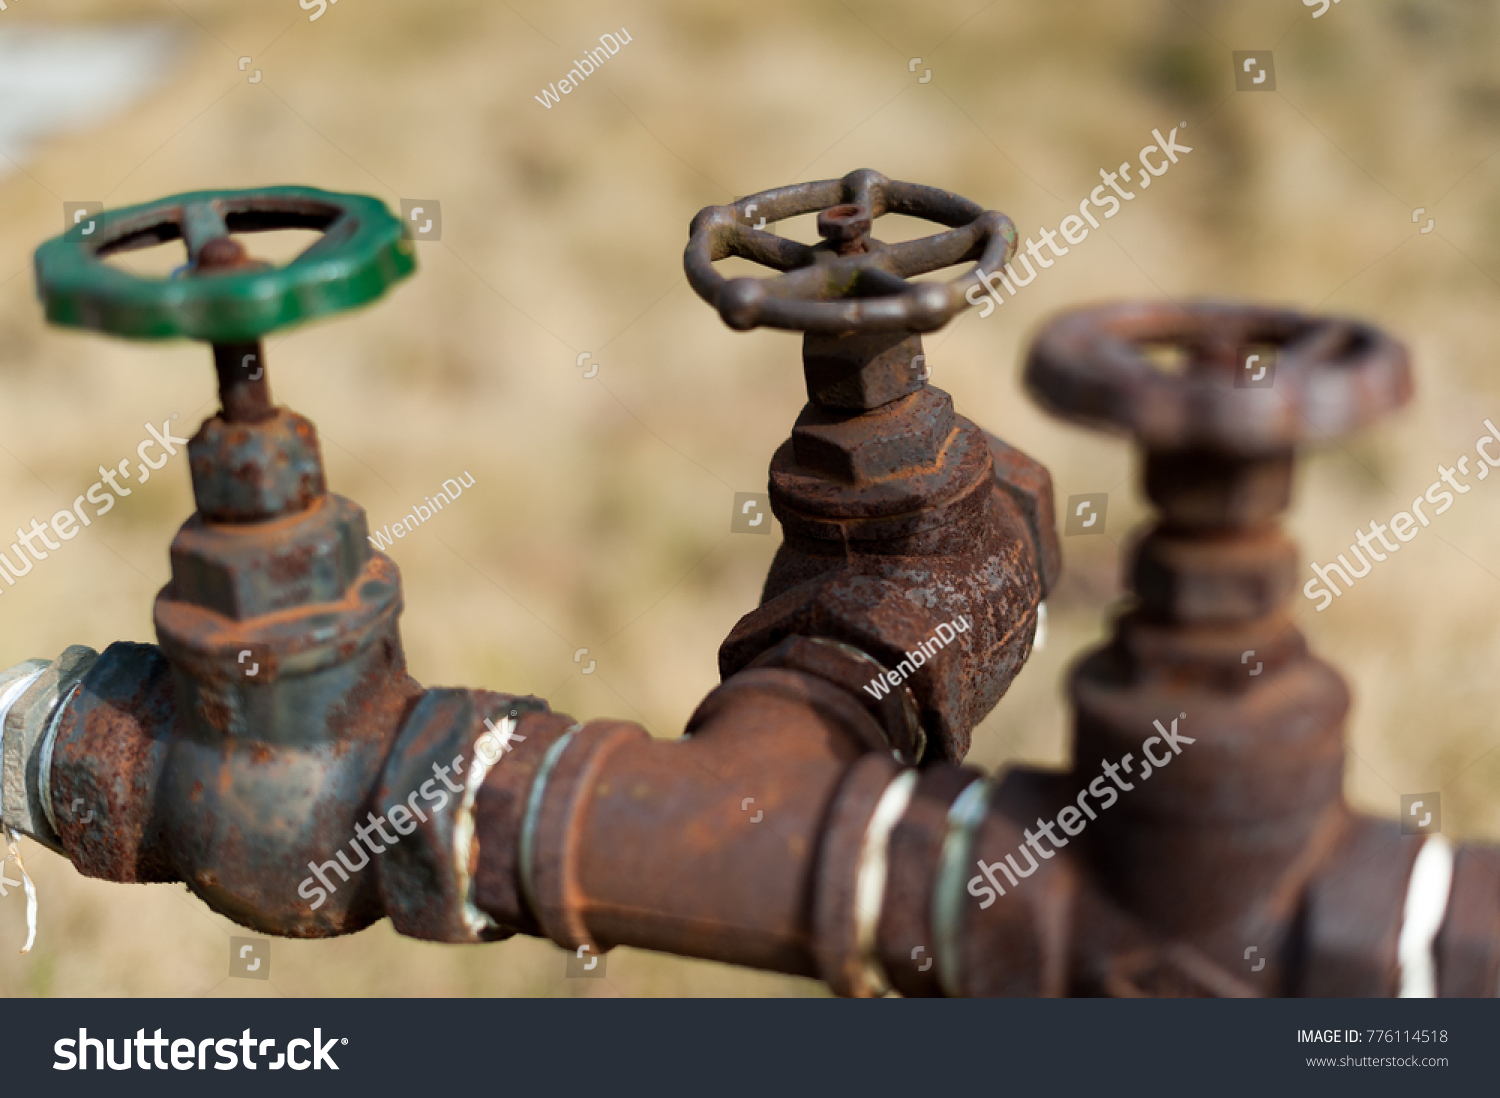 Old Rusty Water Faucet Stock Photo (Royalty Free) 776114518 ...